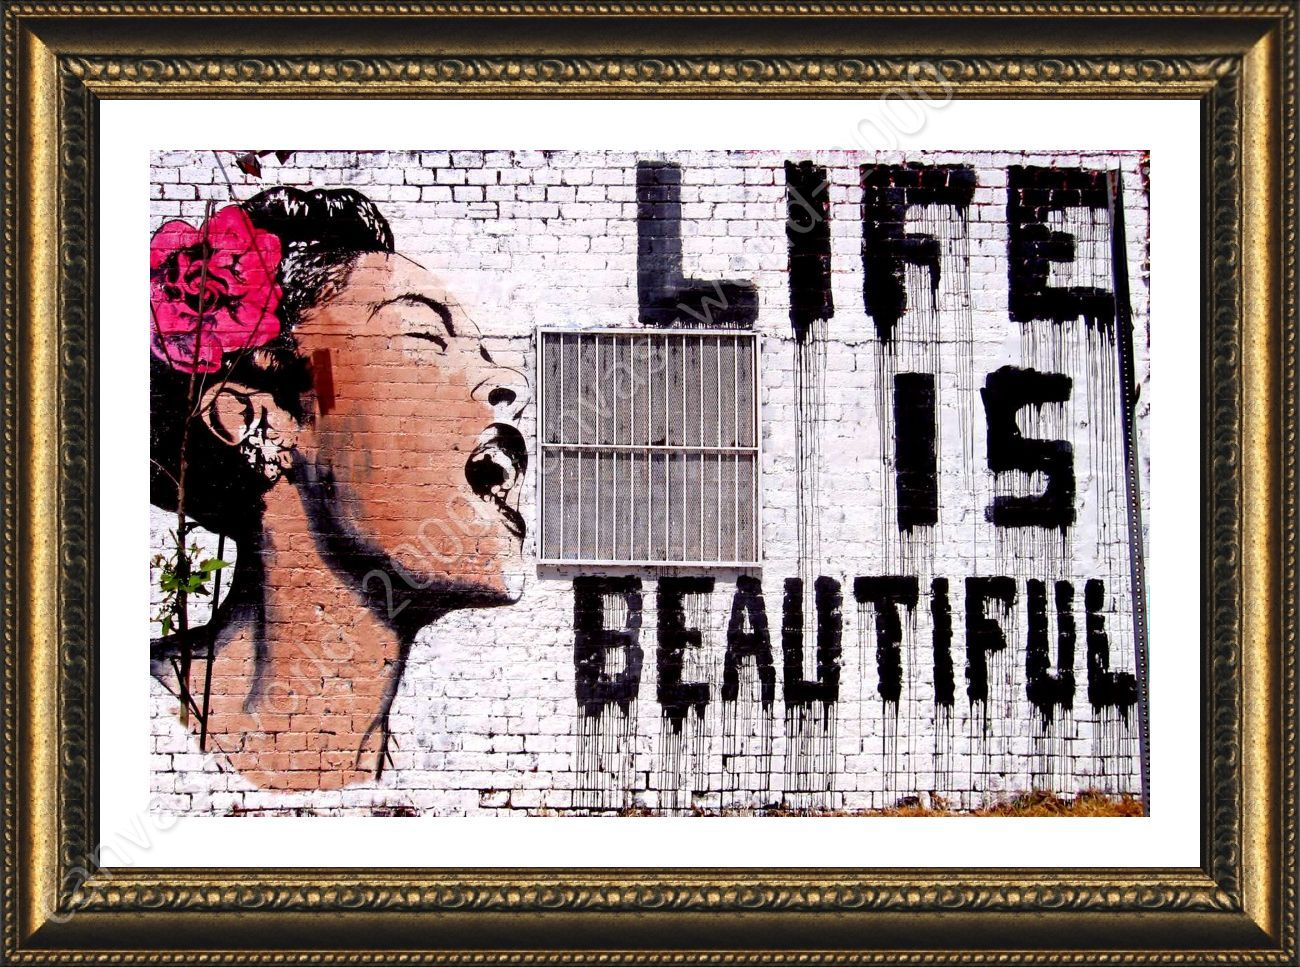 Life Is Beautiful By Banksy Framed Canvas Wall Art Hd Paint Painting Print